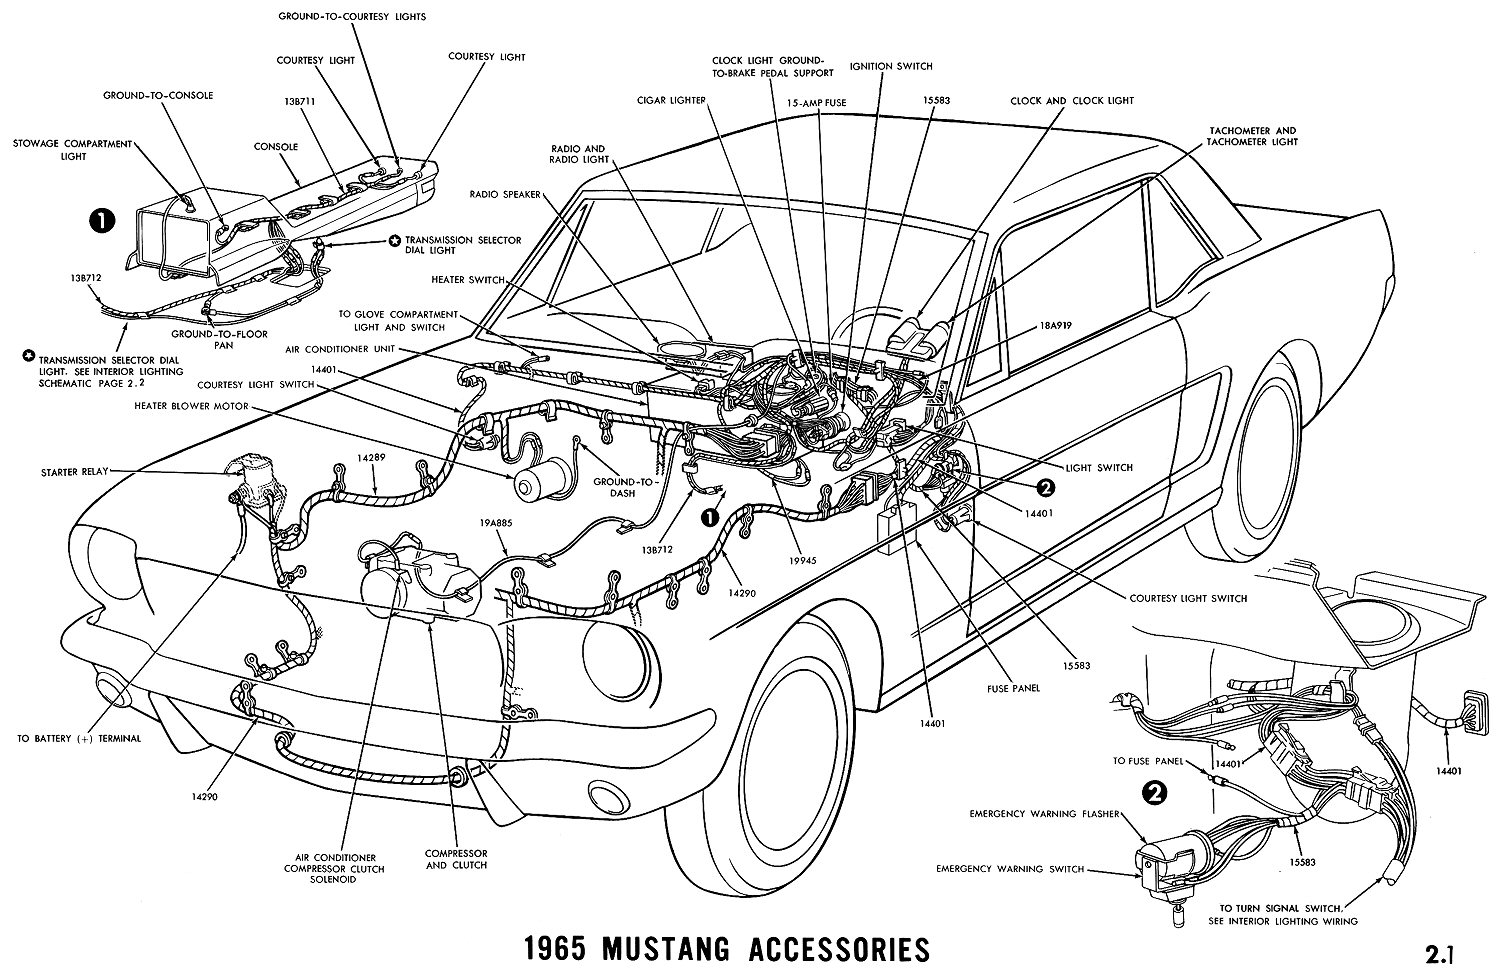 65 mustang accesories 1965 1973 ford mustang archives 1973 mustang wiring diagram at gsmx.co